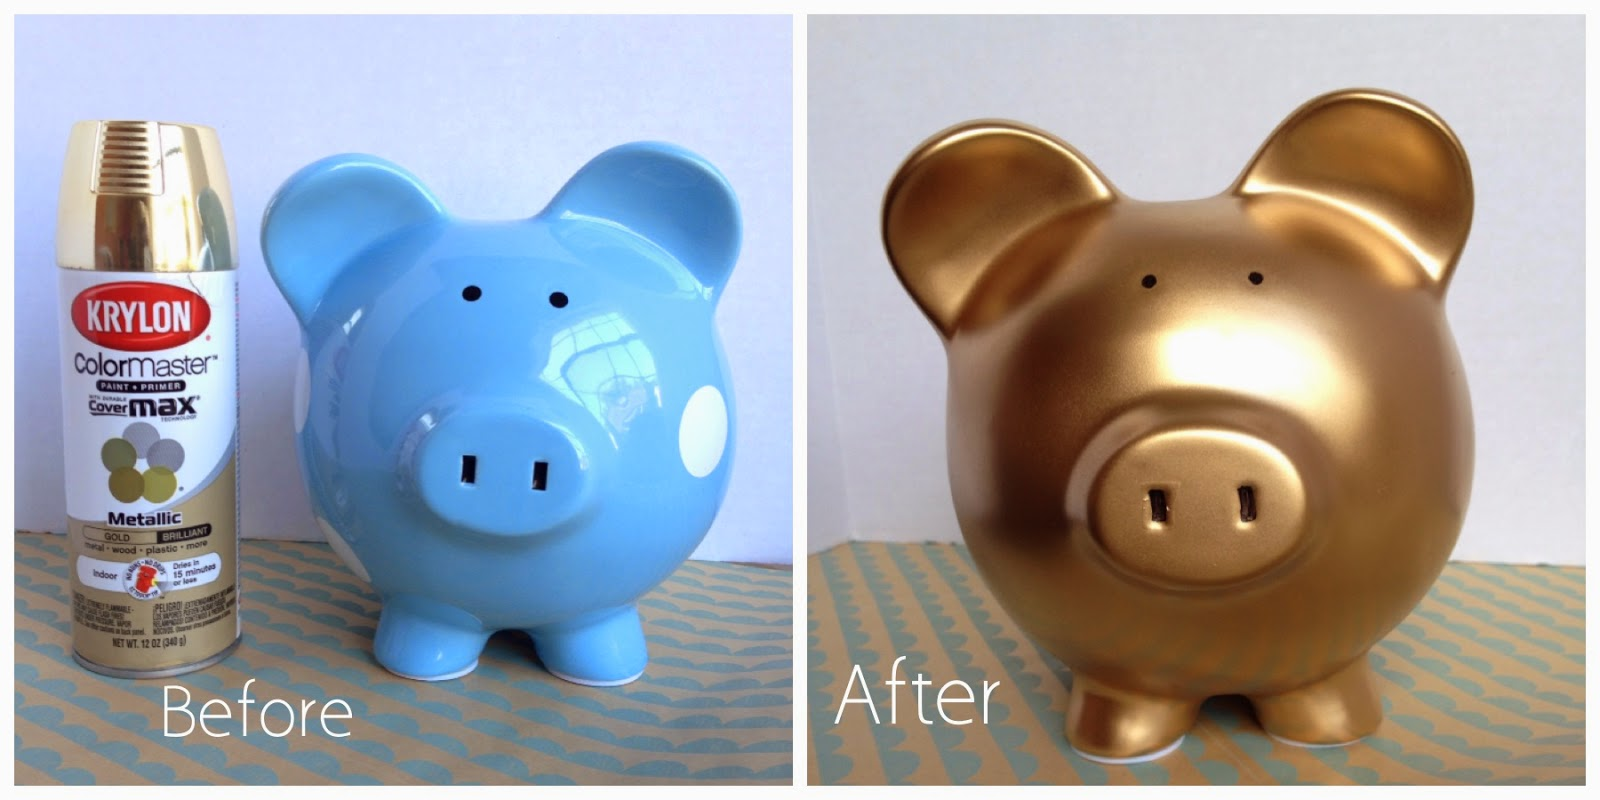 This DIY piggy bank is a brilliant way to upcycle an empty potato chip canister -- and it takes less than 10 minutes to make.